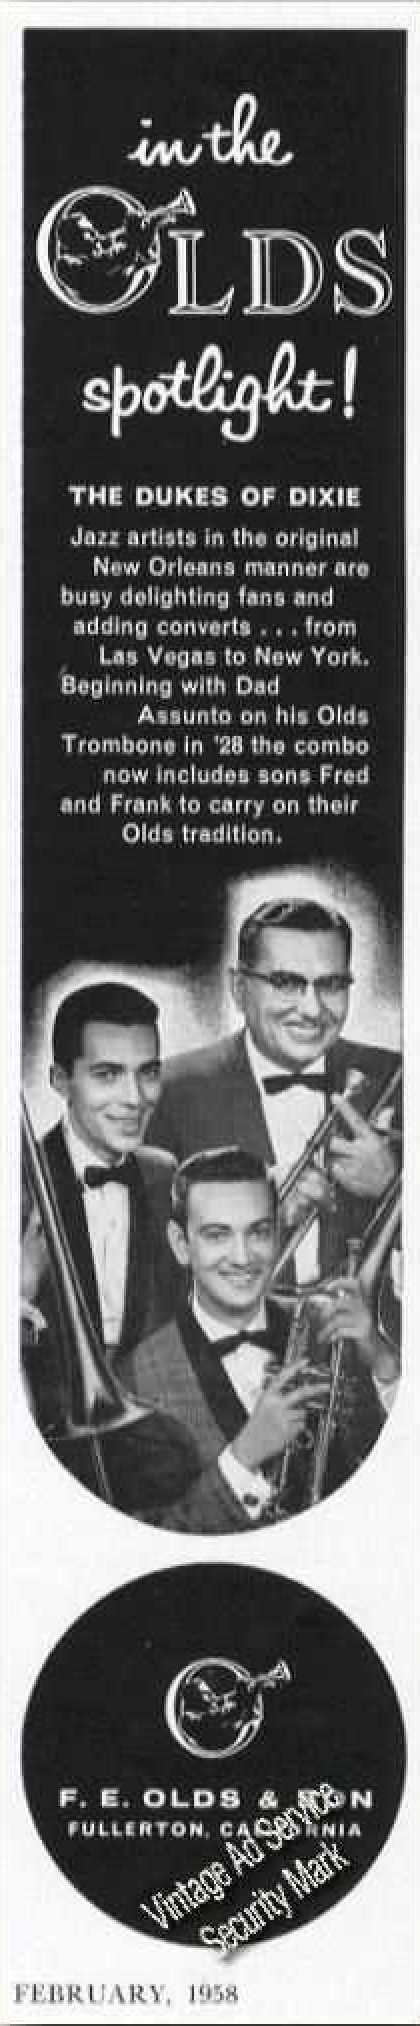 Dukes of Dixie Photo Olds (1958)